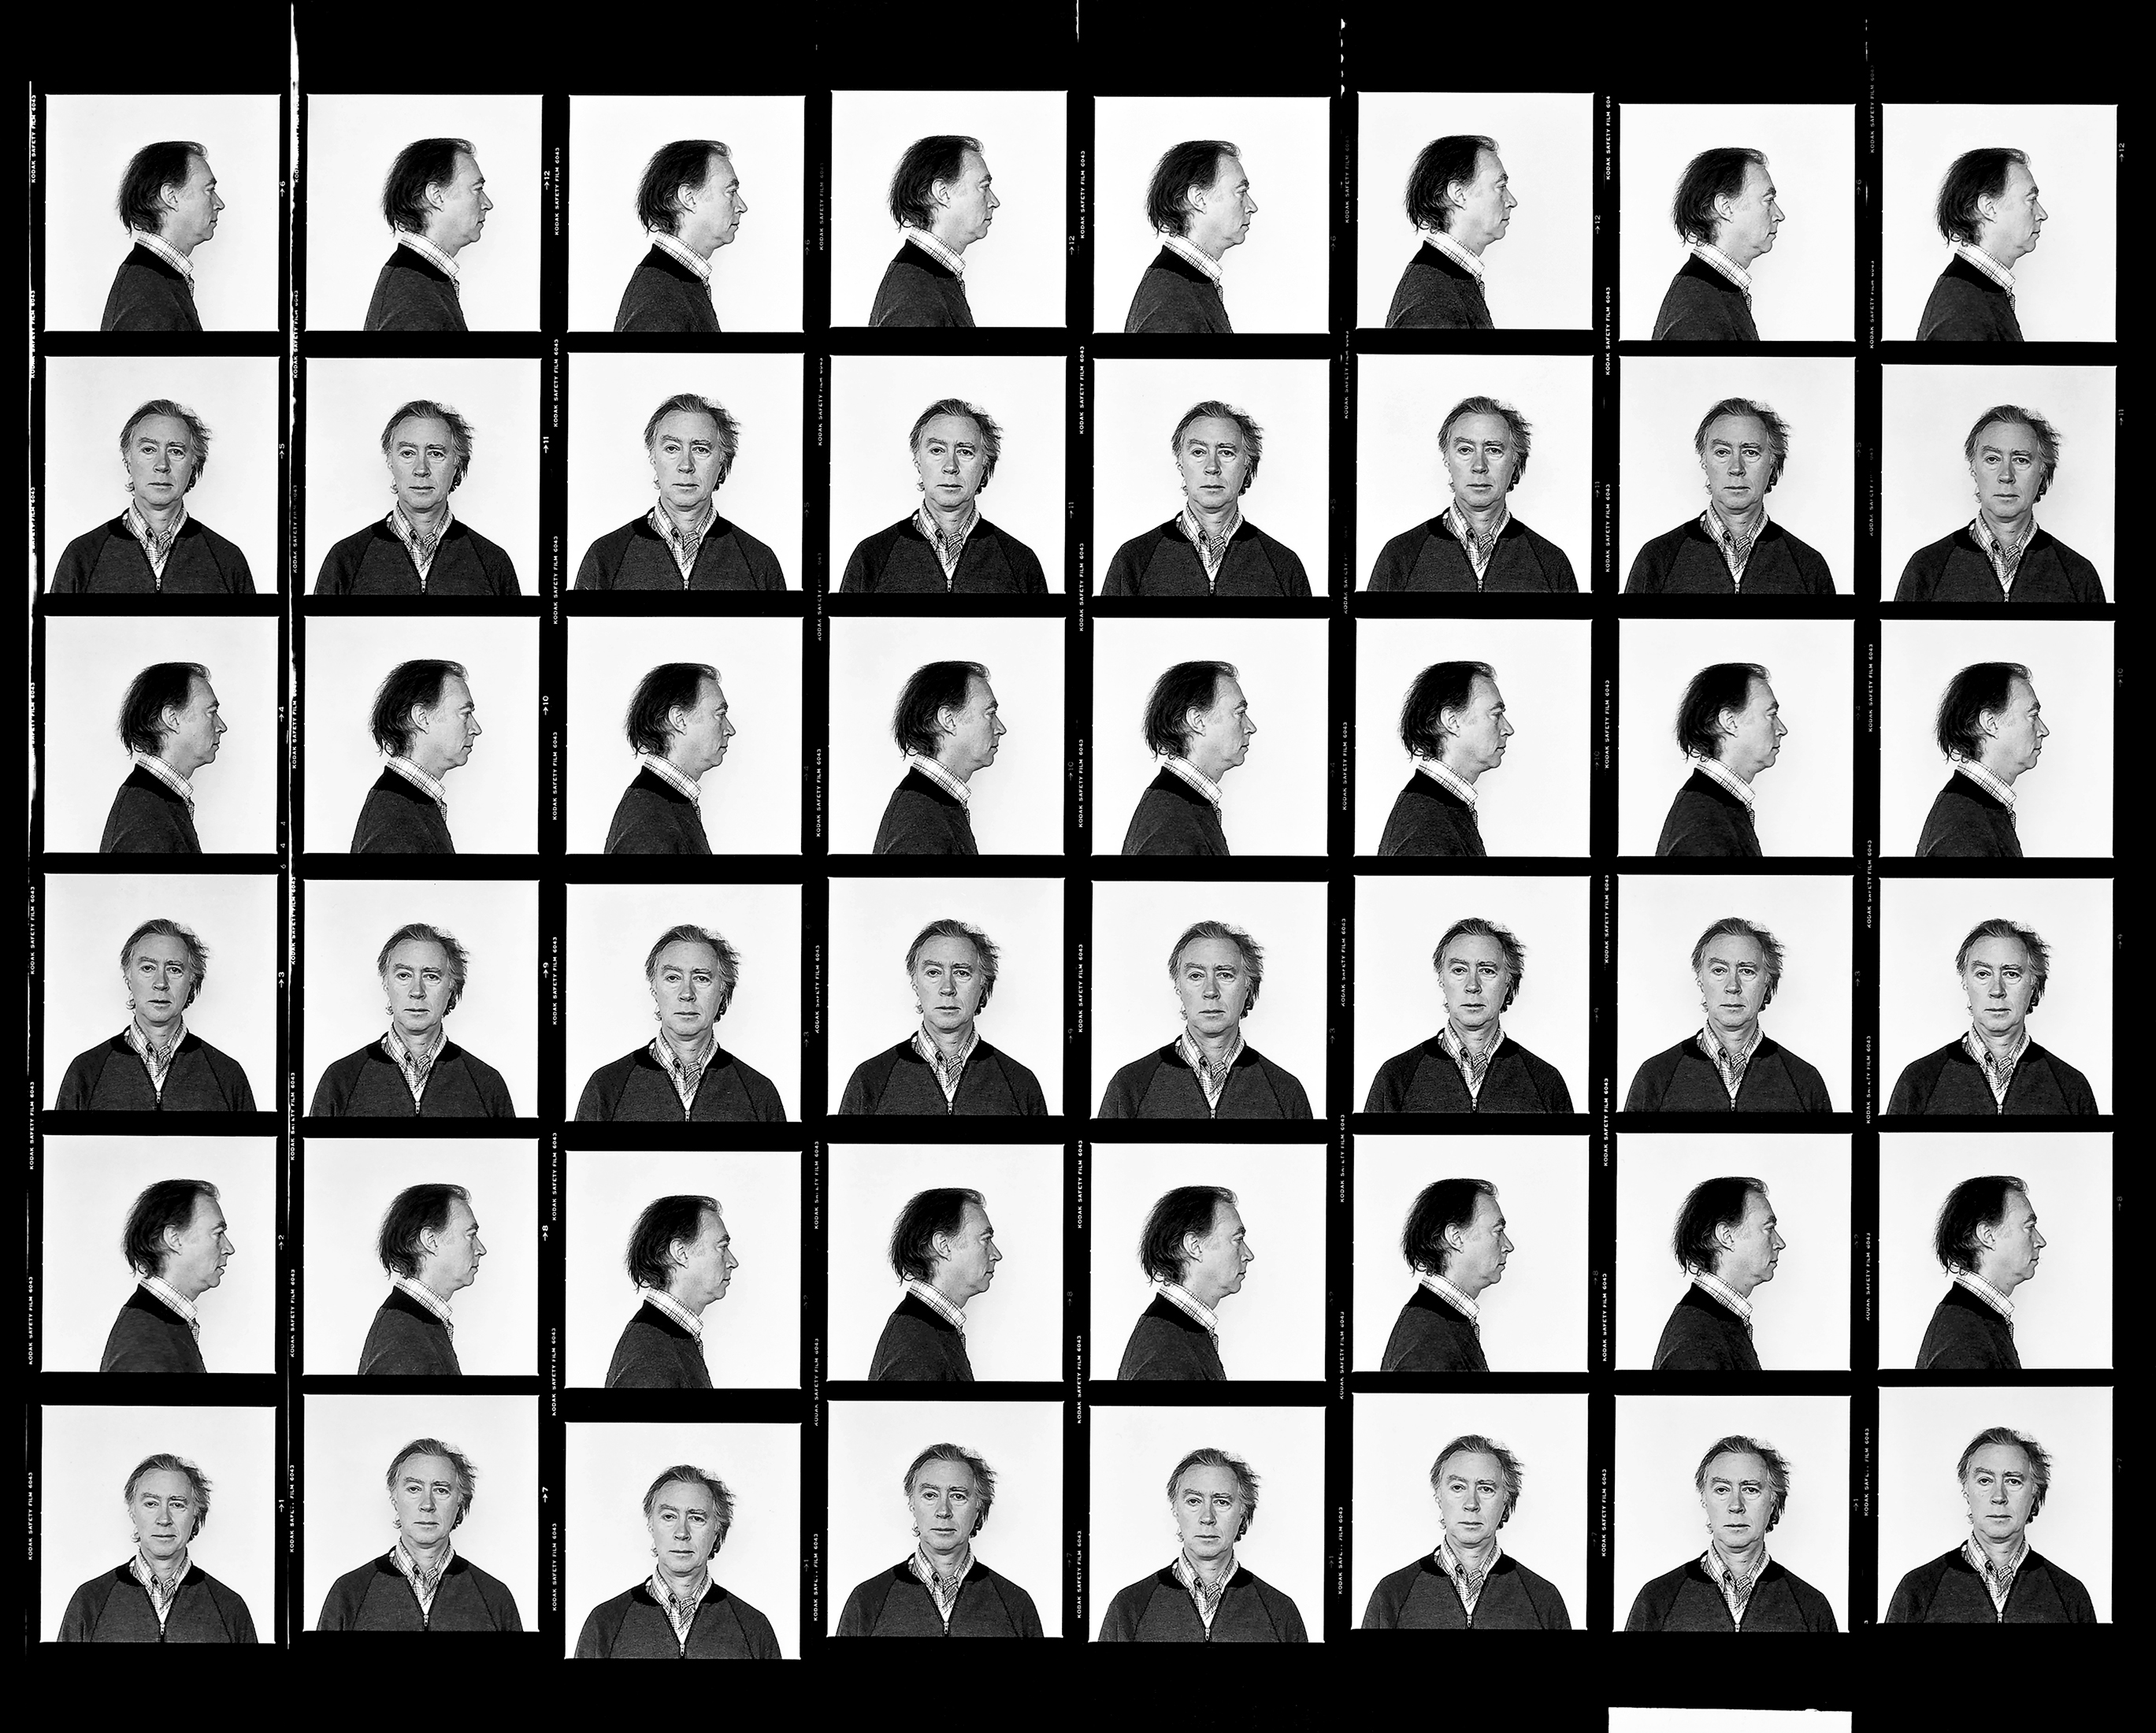 This work comprises forty-eight black-and-white photographs arranged in grid form. Each is a portrait of the same man against a white background. He is pictured alternately full-face and in profile.